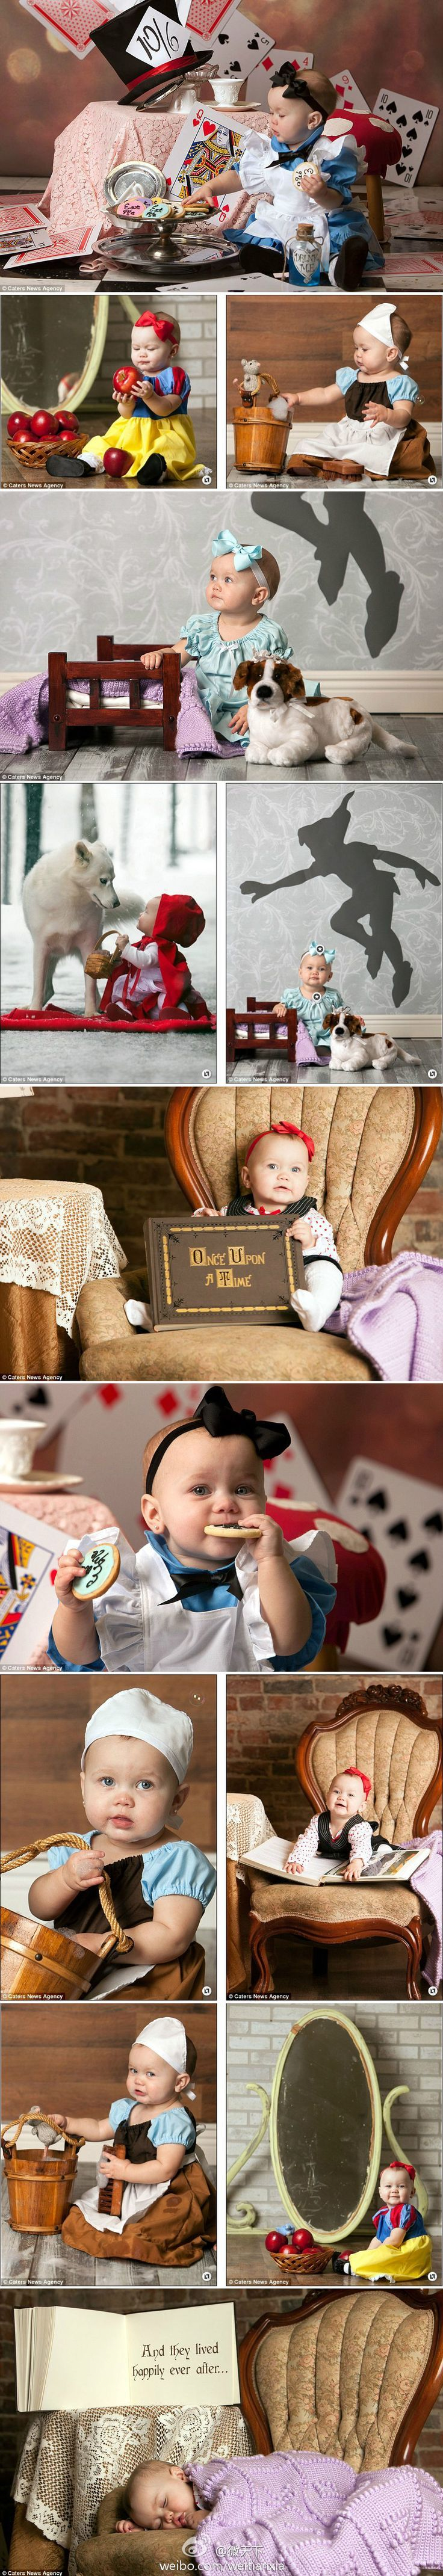 best little wonders images on pinterest newborns baby photos